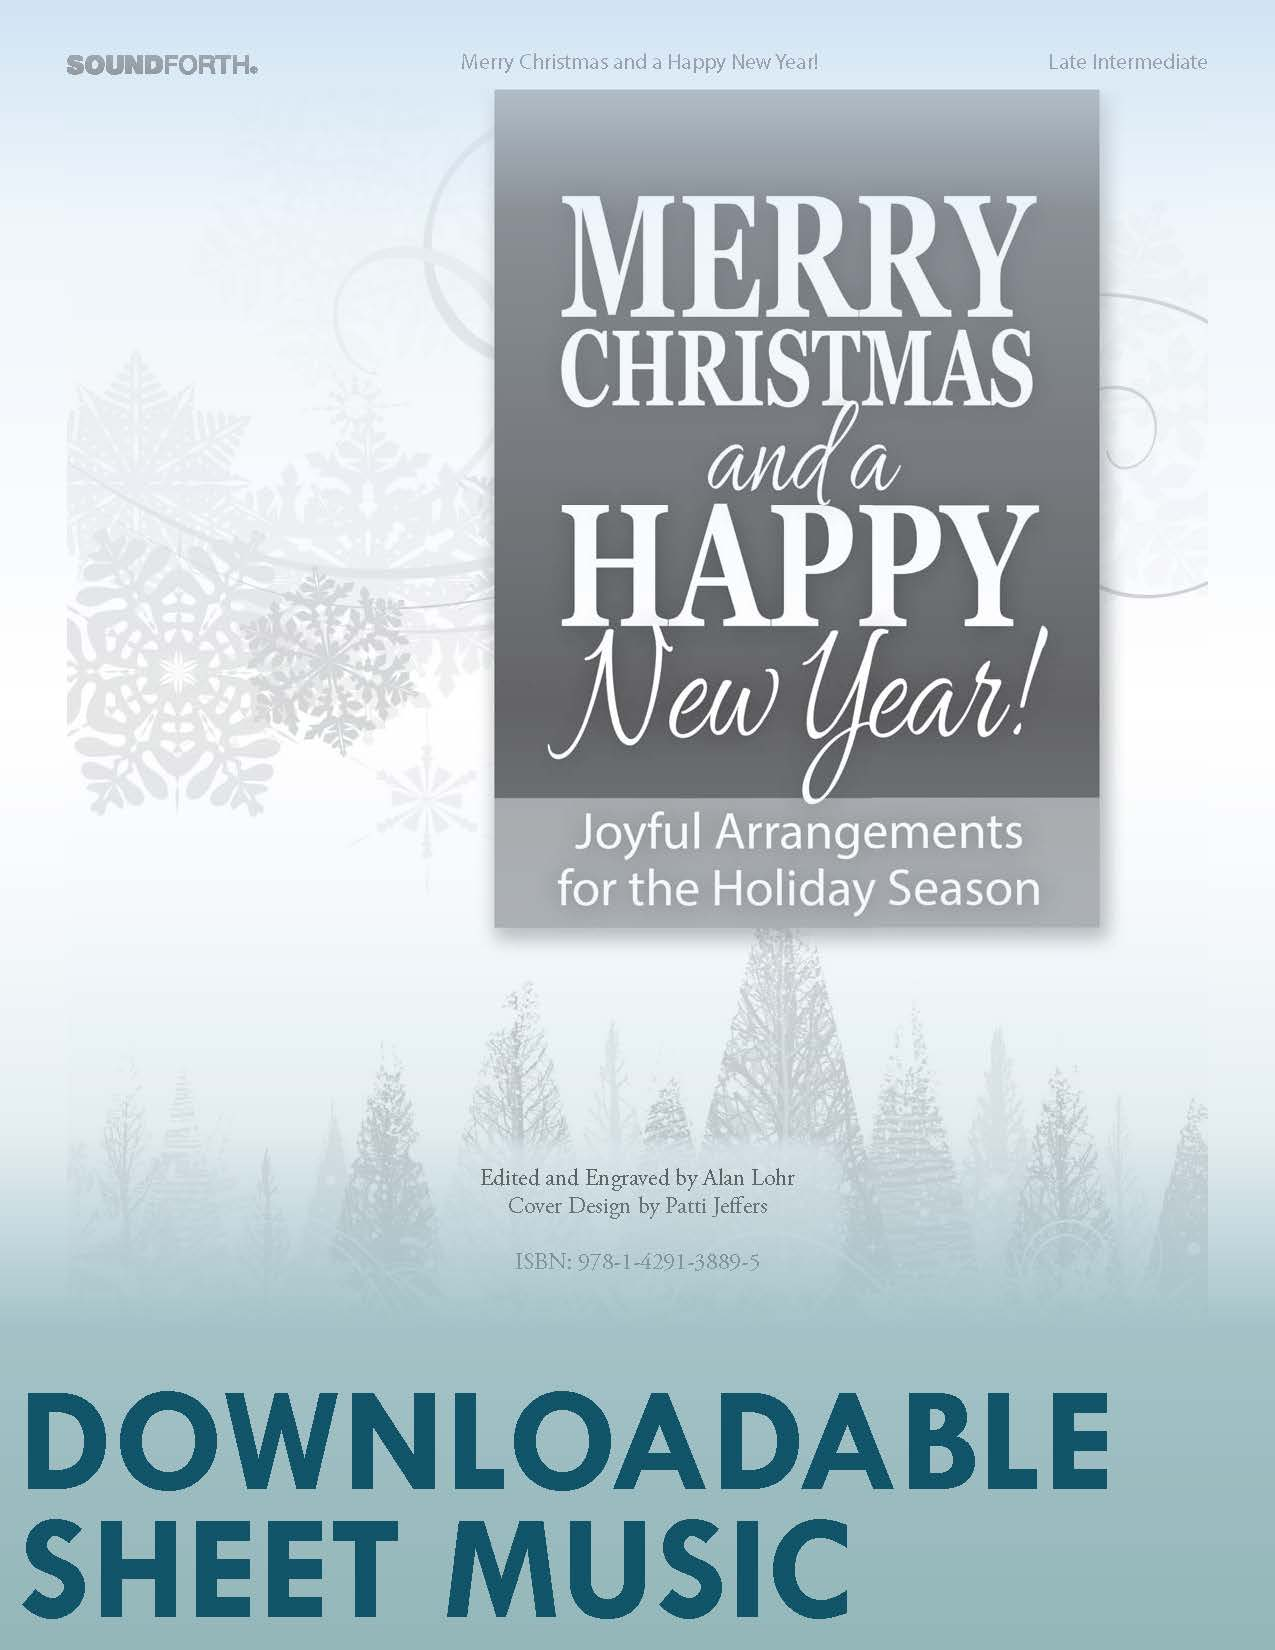 Merry Christmas and a Happy New Year! - Digital Download